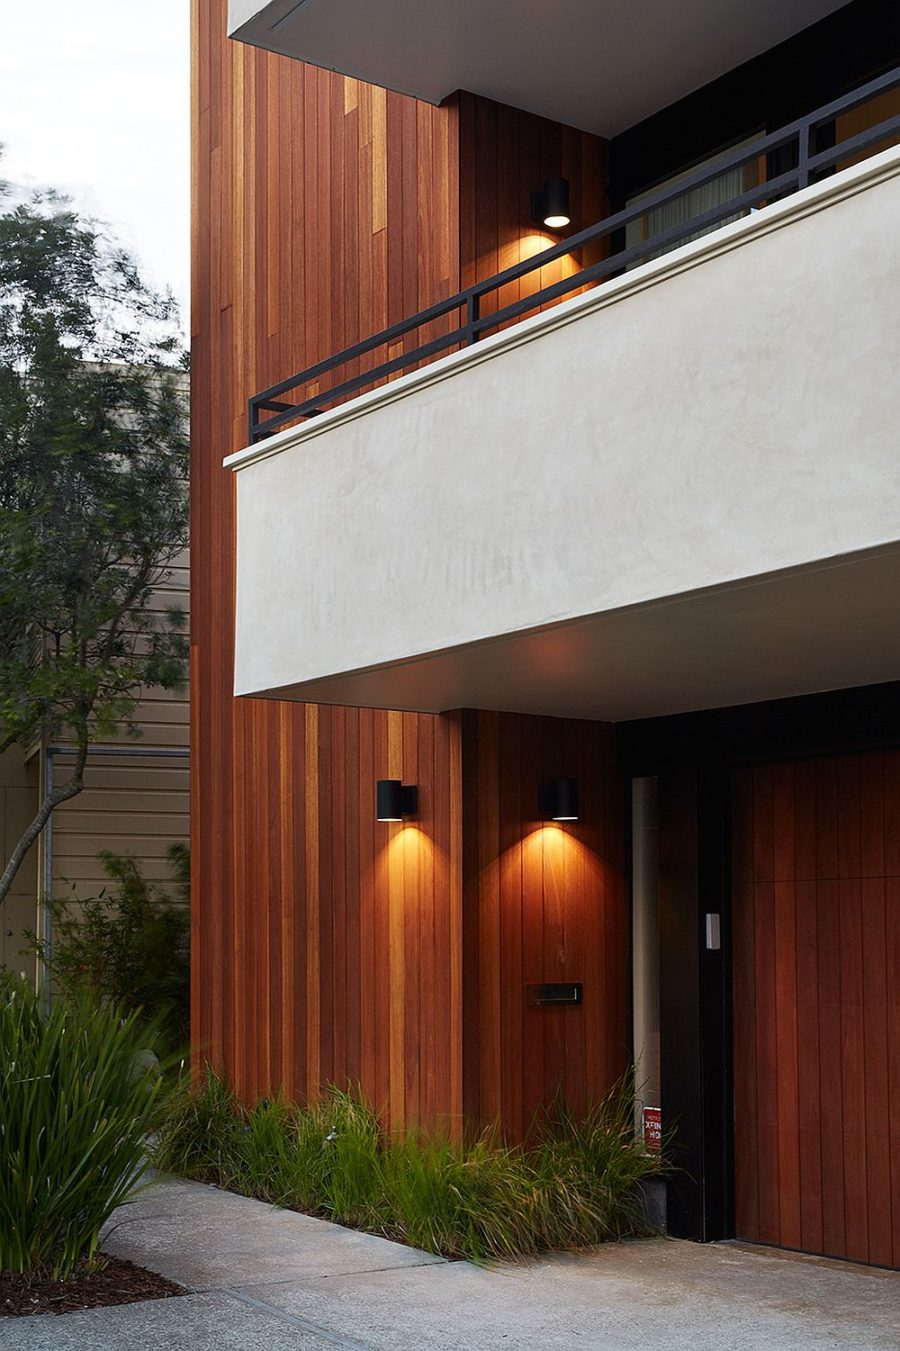 Plastered white balconies contrast with wood siding